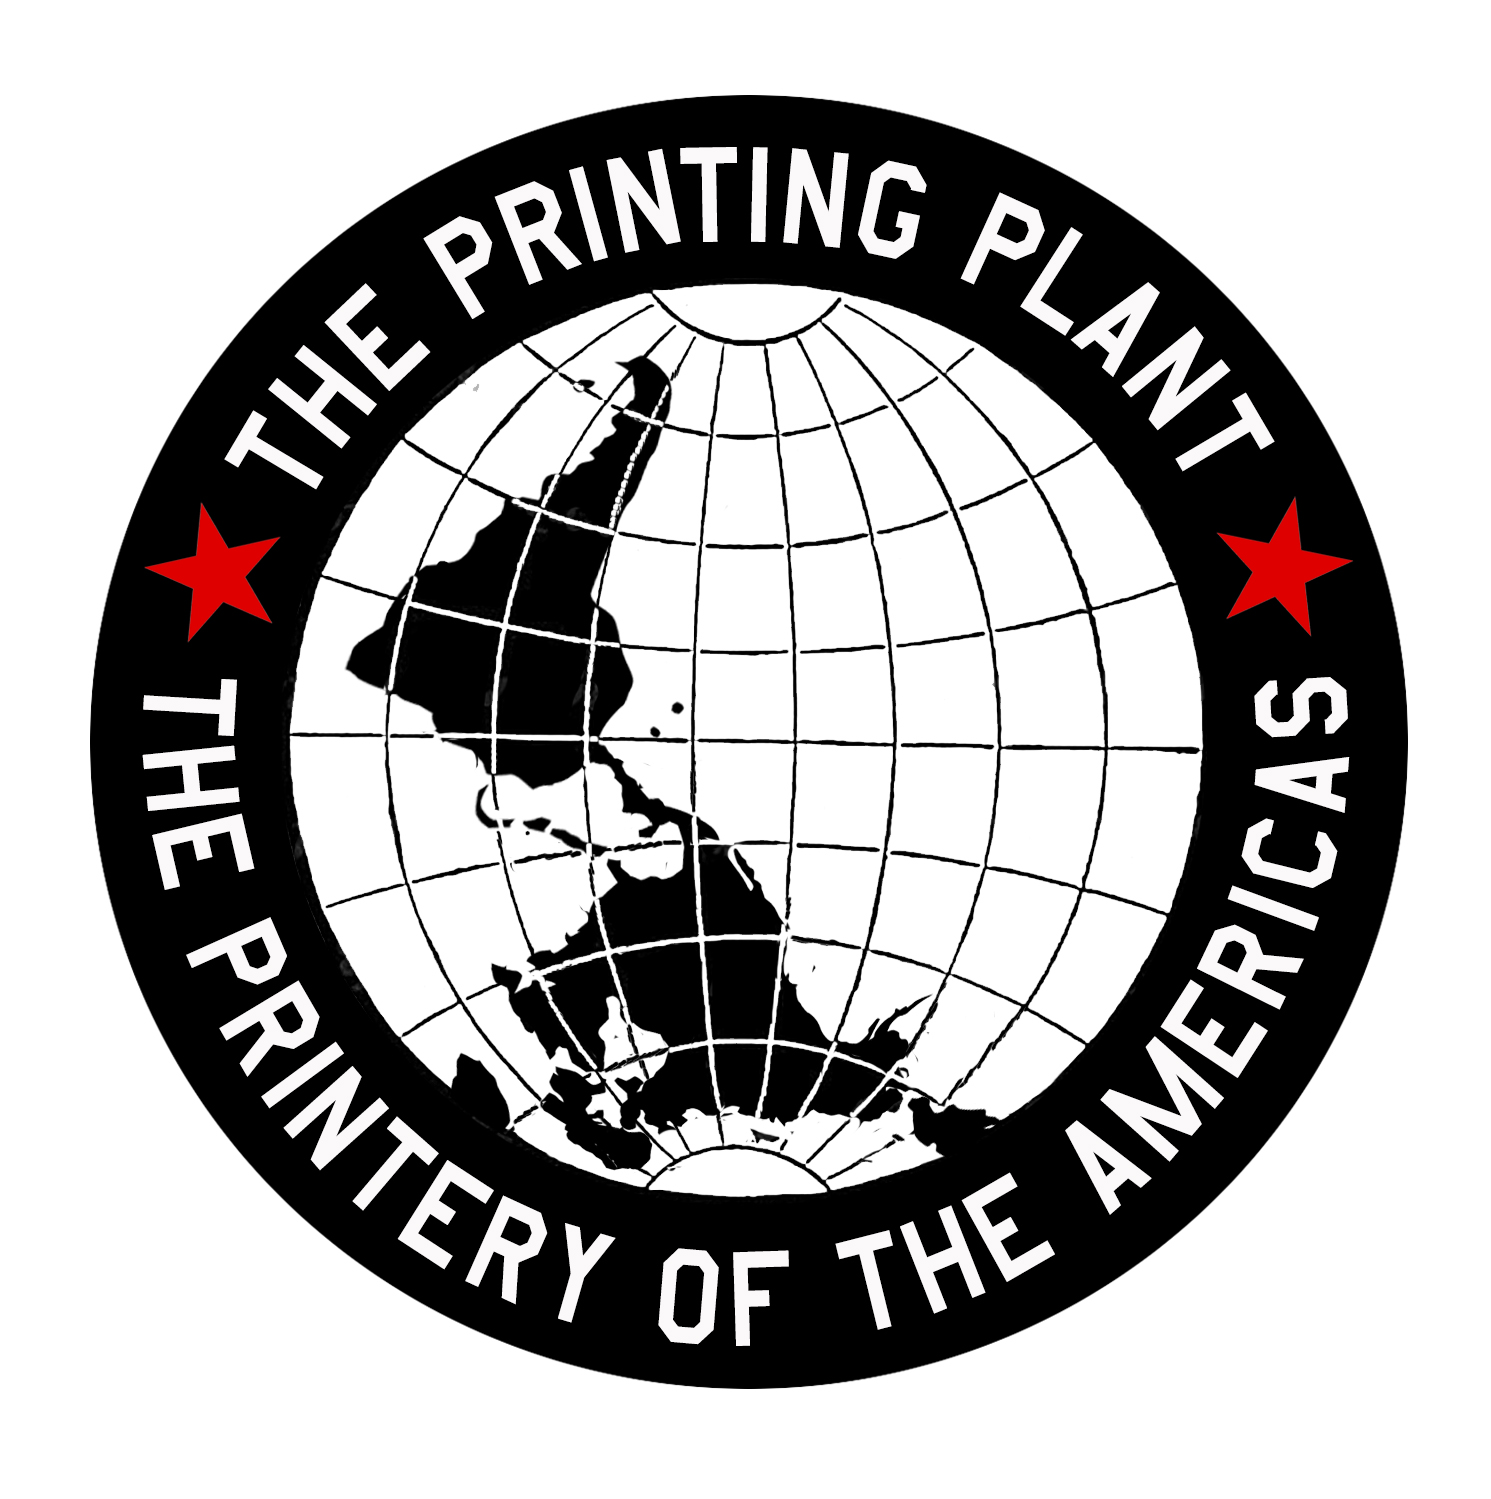 The Printing Plant